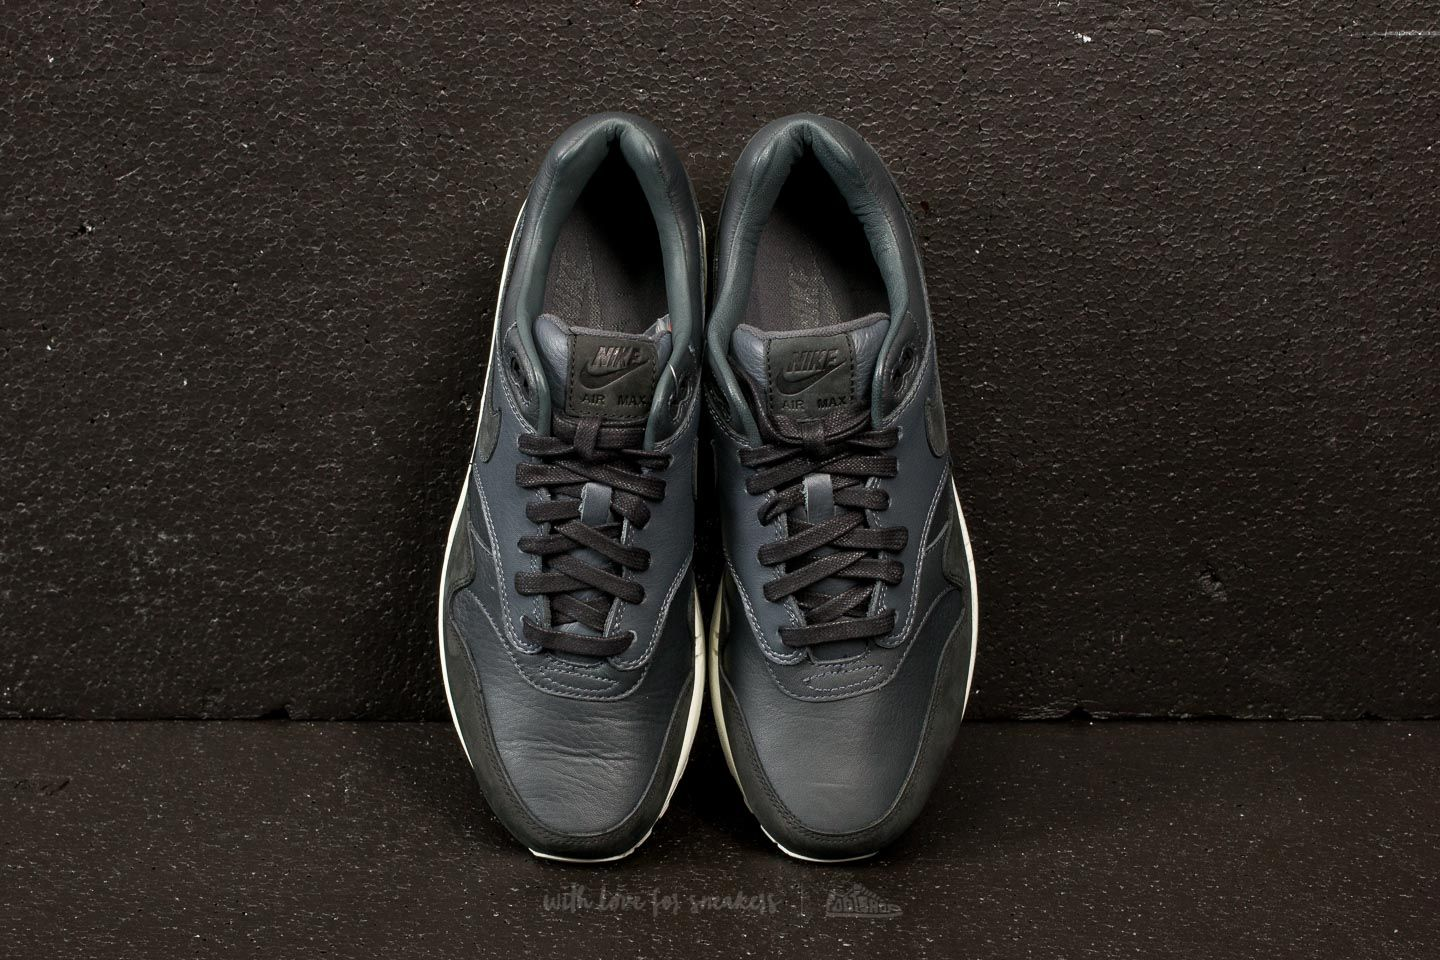 NikeLab Air Max 1 Pinnacle Black  Anthracite-Dark Grey a prezzo eccezionale  116 € 5b517ed9b